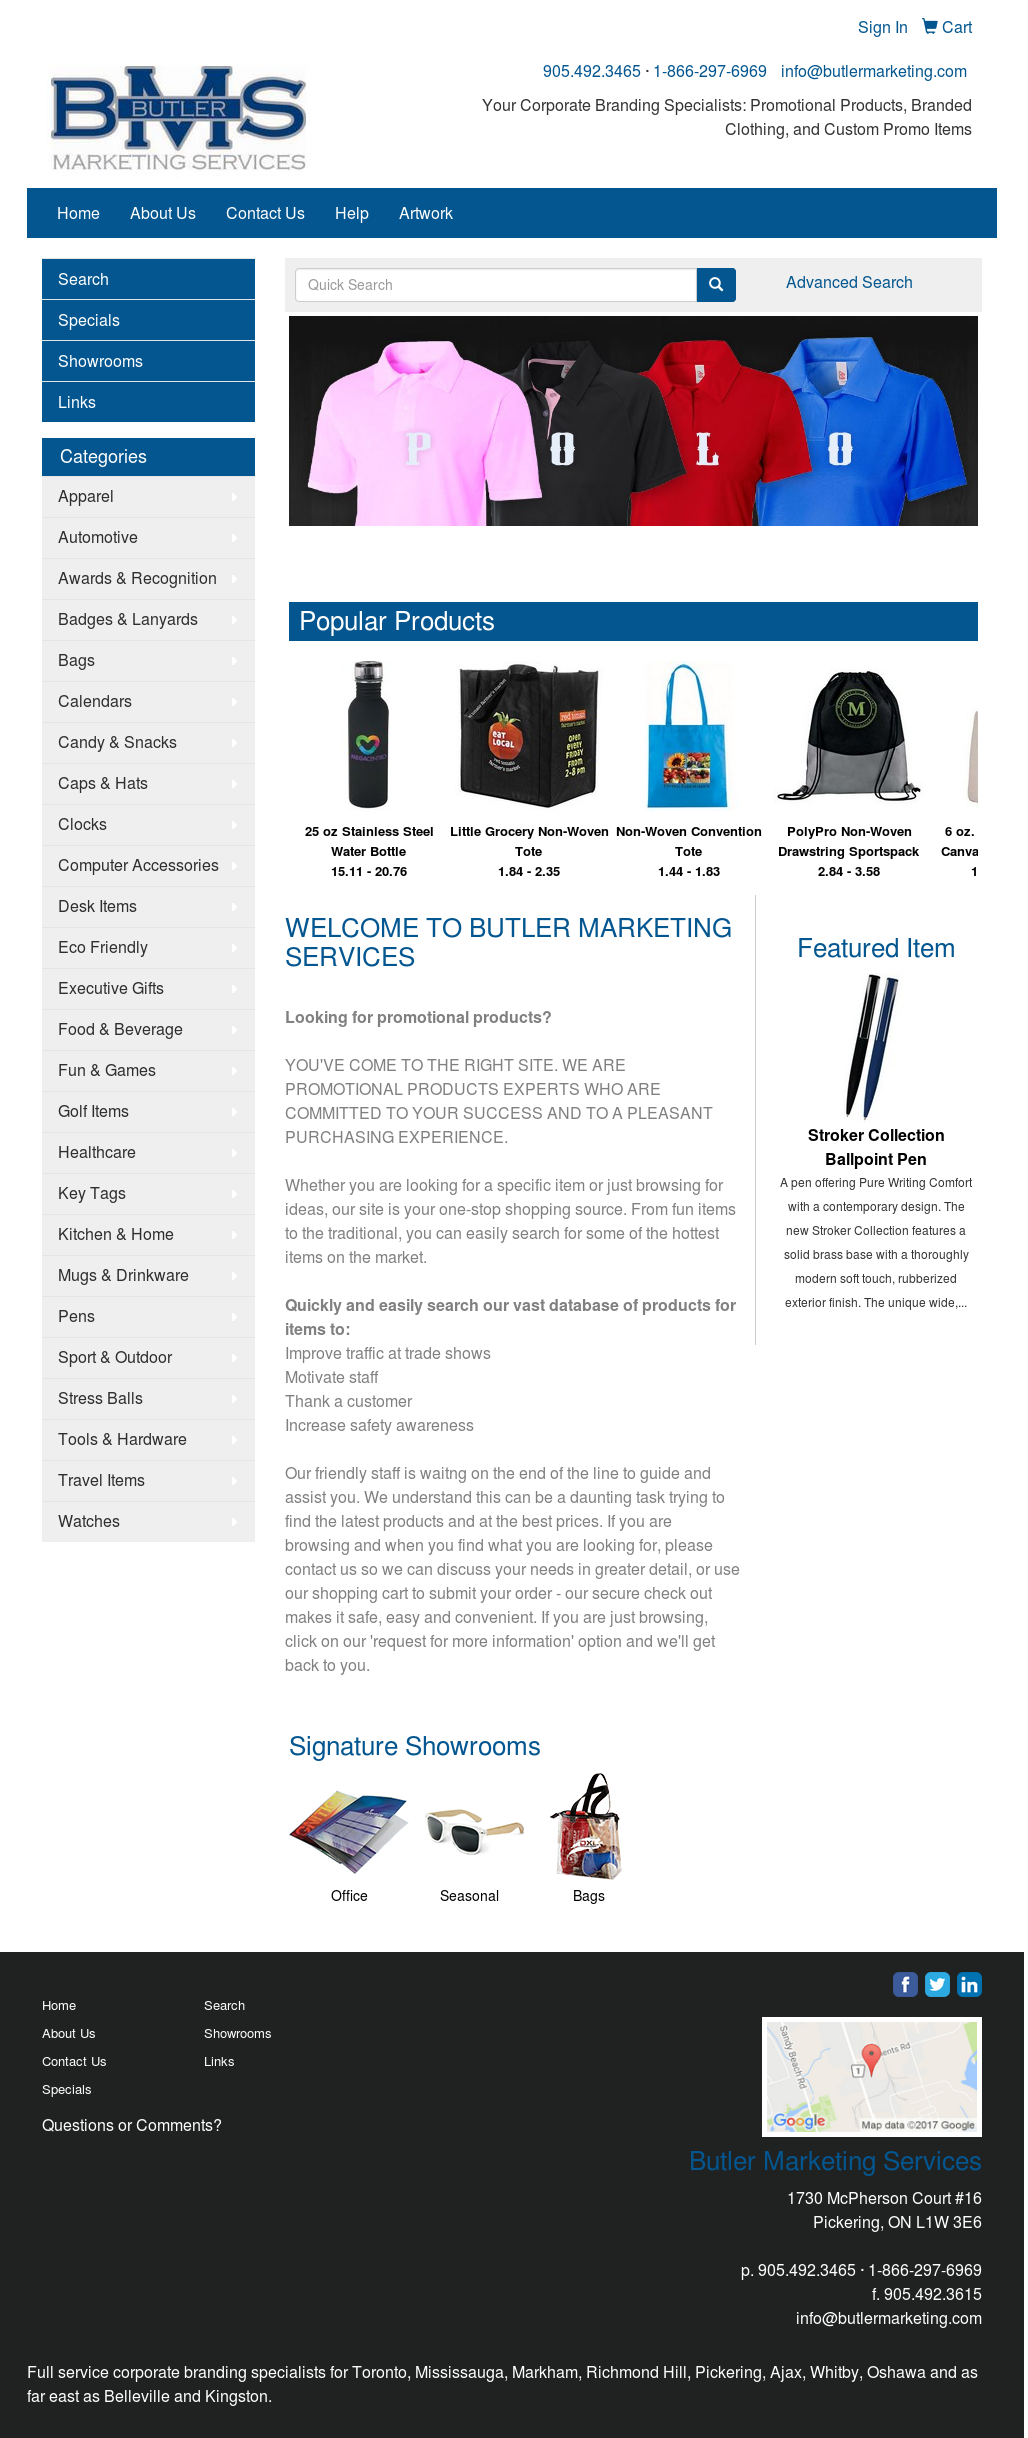 Butlermarketing Competitors, Revenue and Employees - Owler